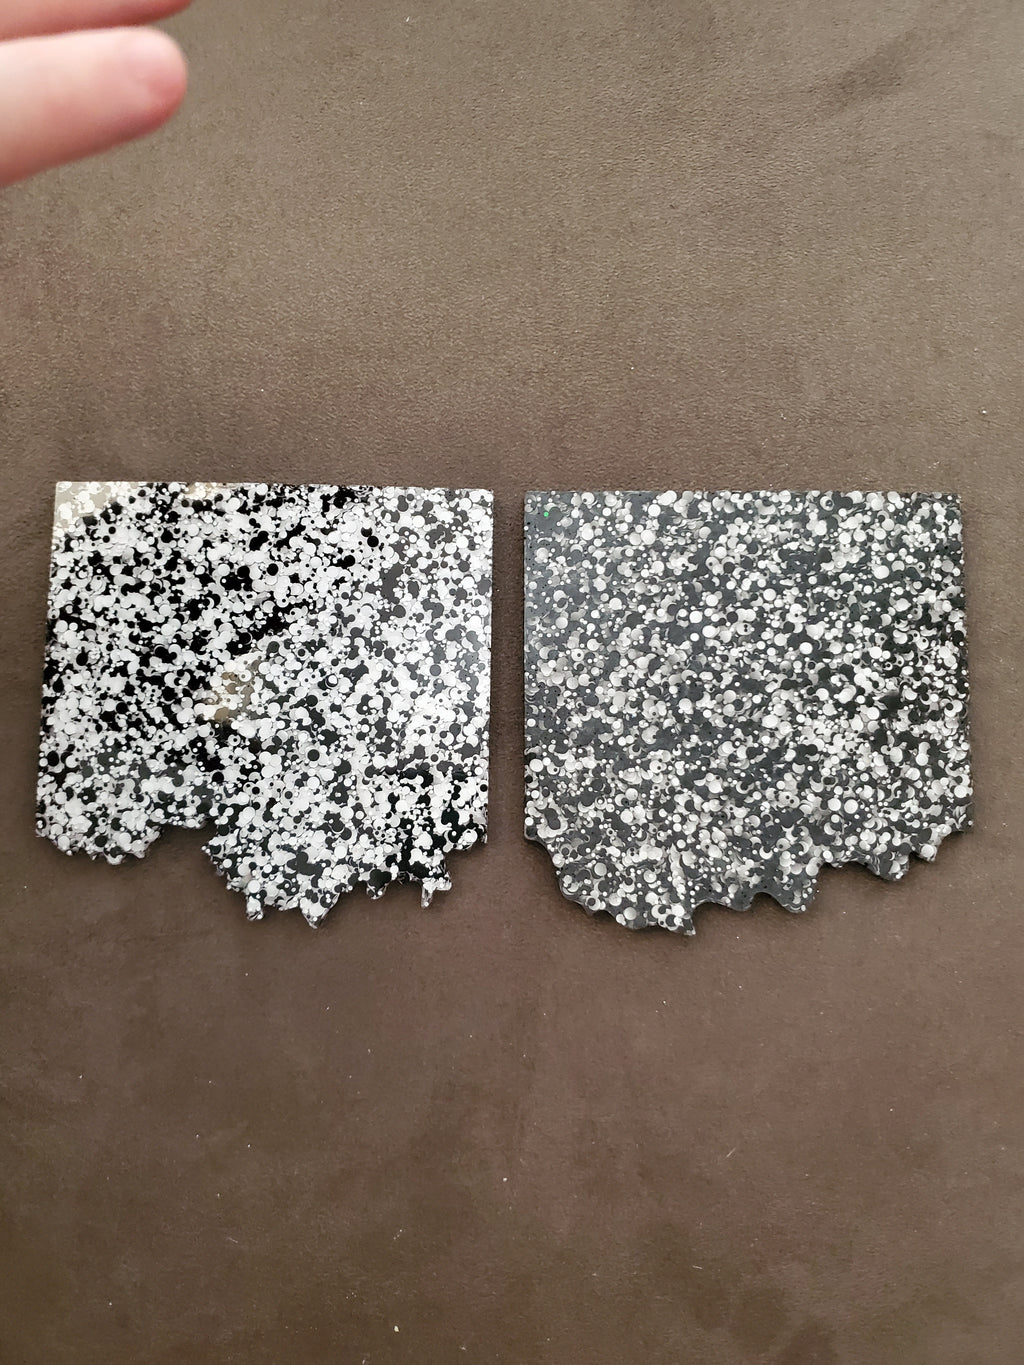 Handmade Resin Speckled Black/White 2pack Coasters